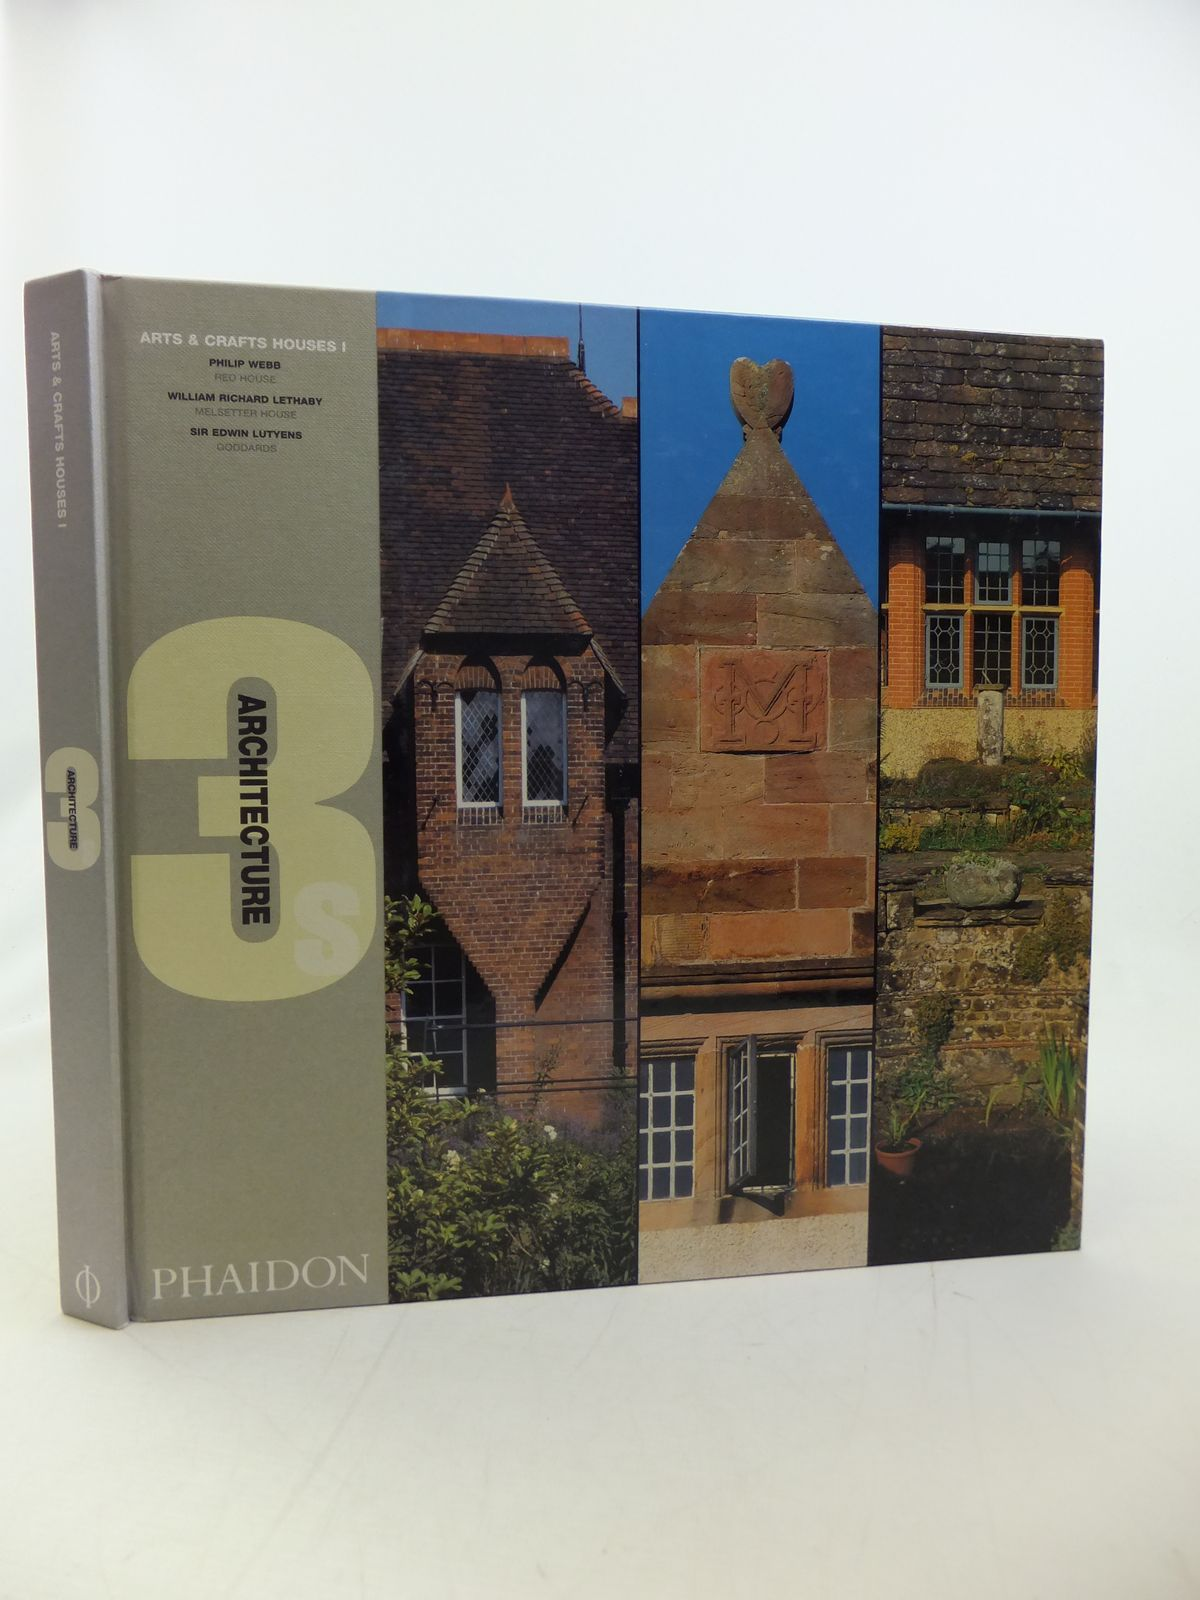 Photo of ARTS &amp; CRAFTS HOUSES I (ARCHITECTURE 3S) written by Dunlop, Beth<br />Hollamby, Edward<br />Garnham, Trevor<br />Edwards, Brian published by Phaidon Press Limited (STOCK CODE: 2114050)  for sale by Stella & Rose's Books